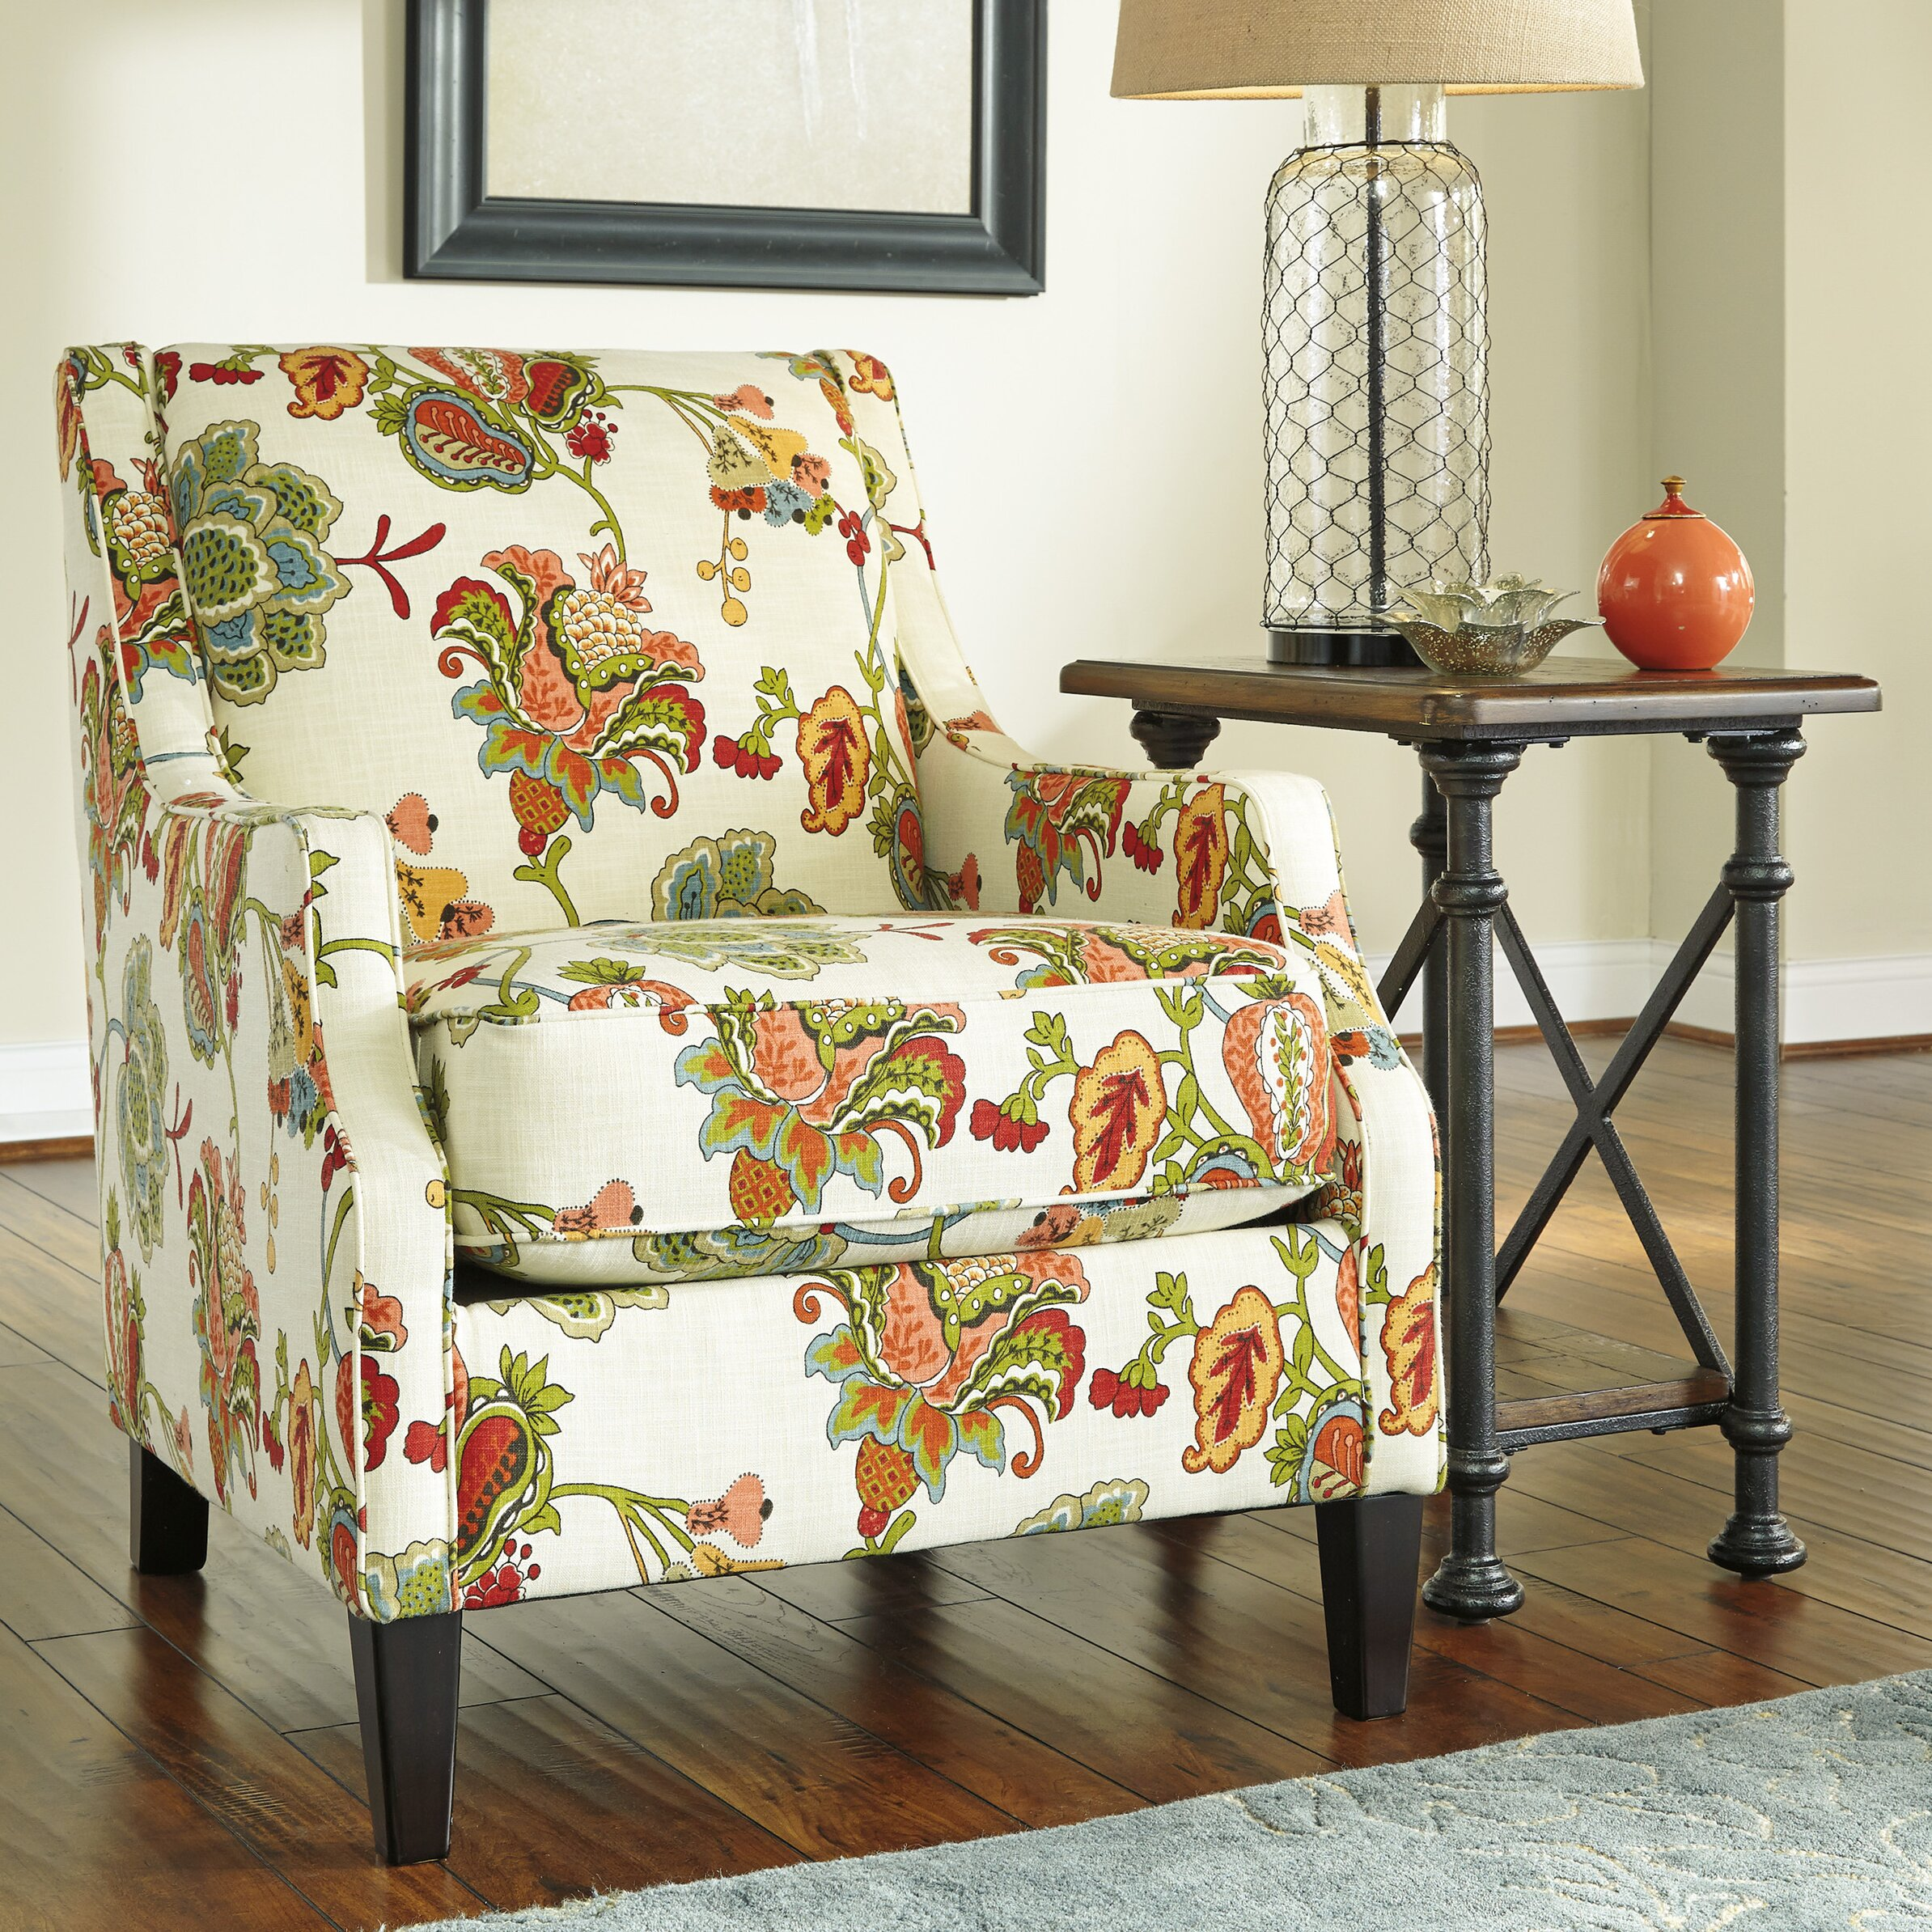 Masculine Chair Covers Kerridon Accent Chair